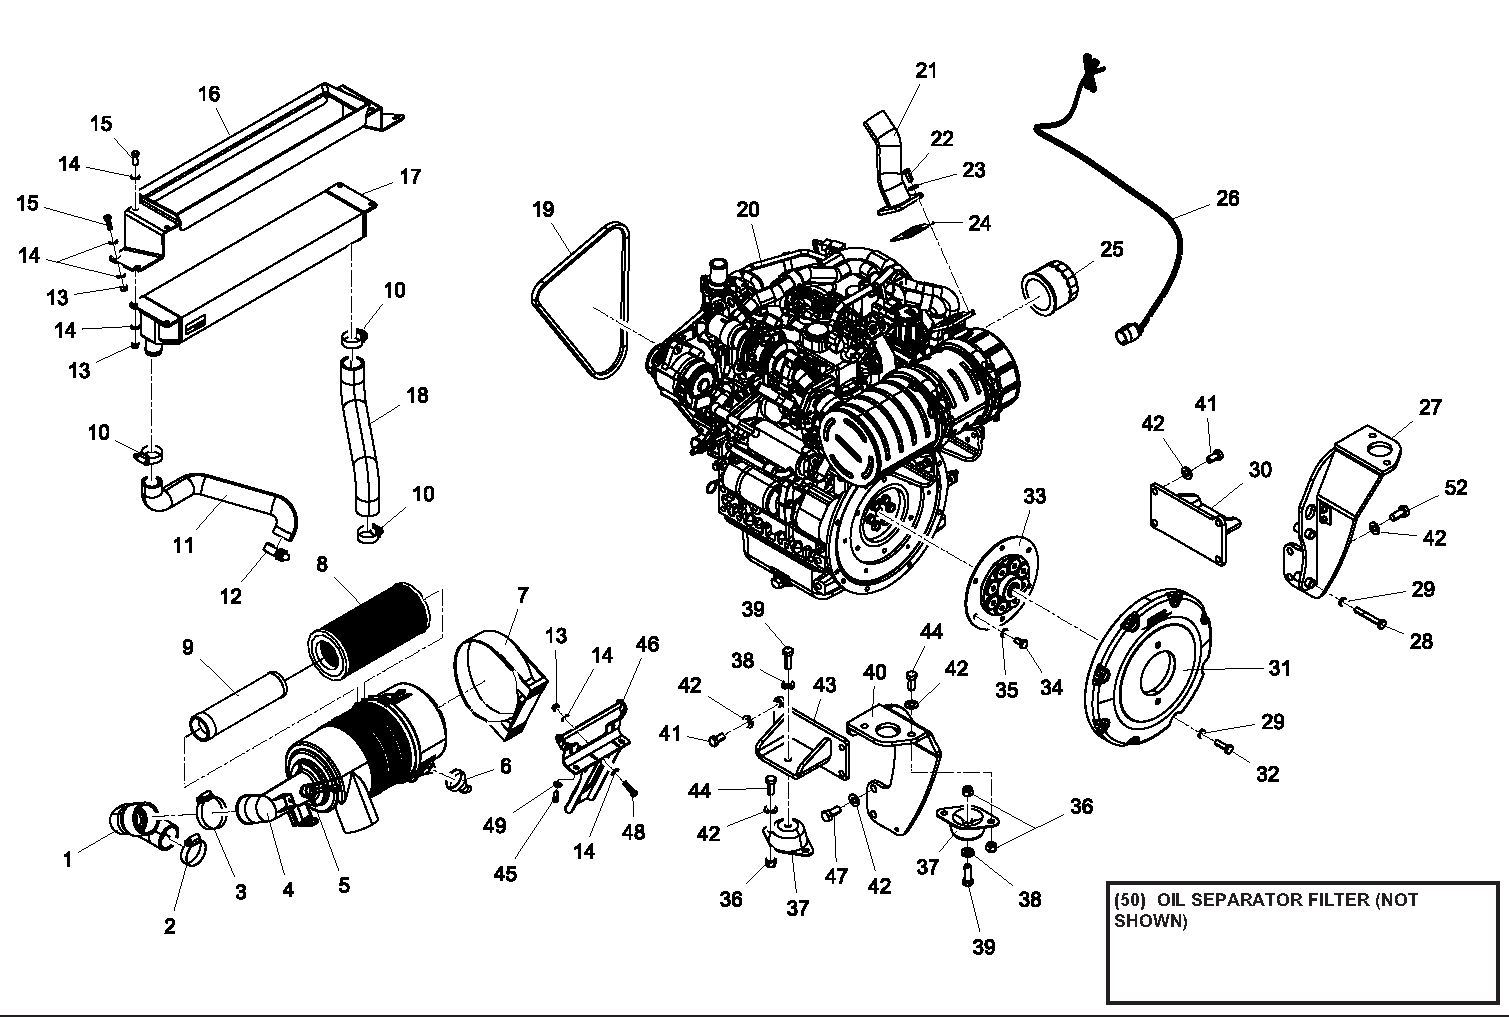 ASV RT40 OEM Parts Diagrams